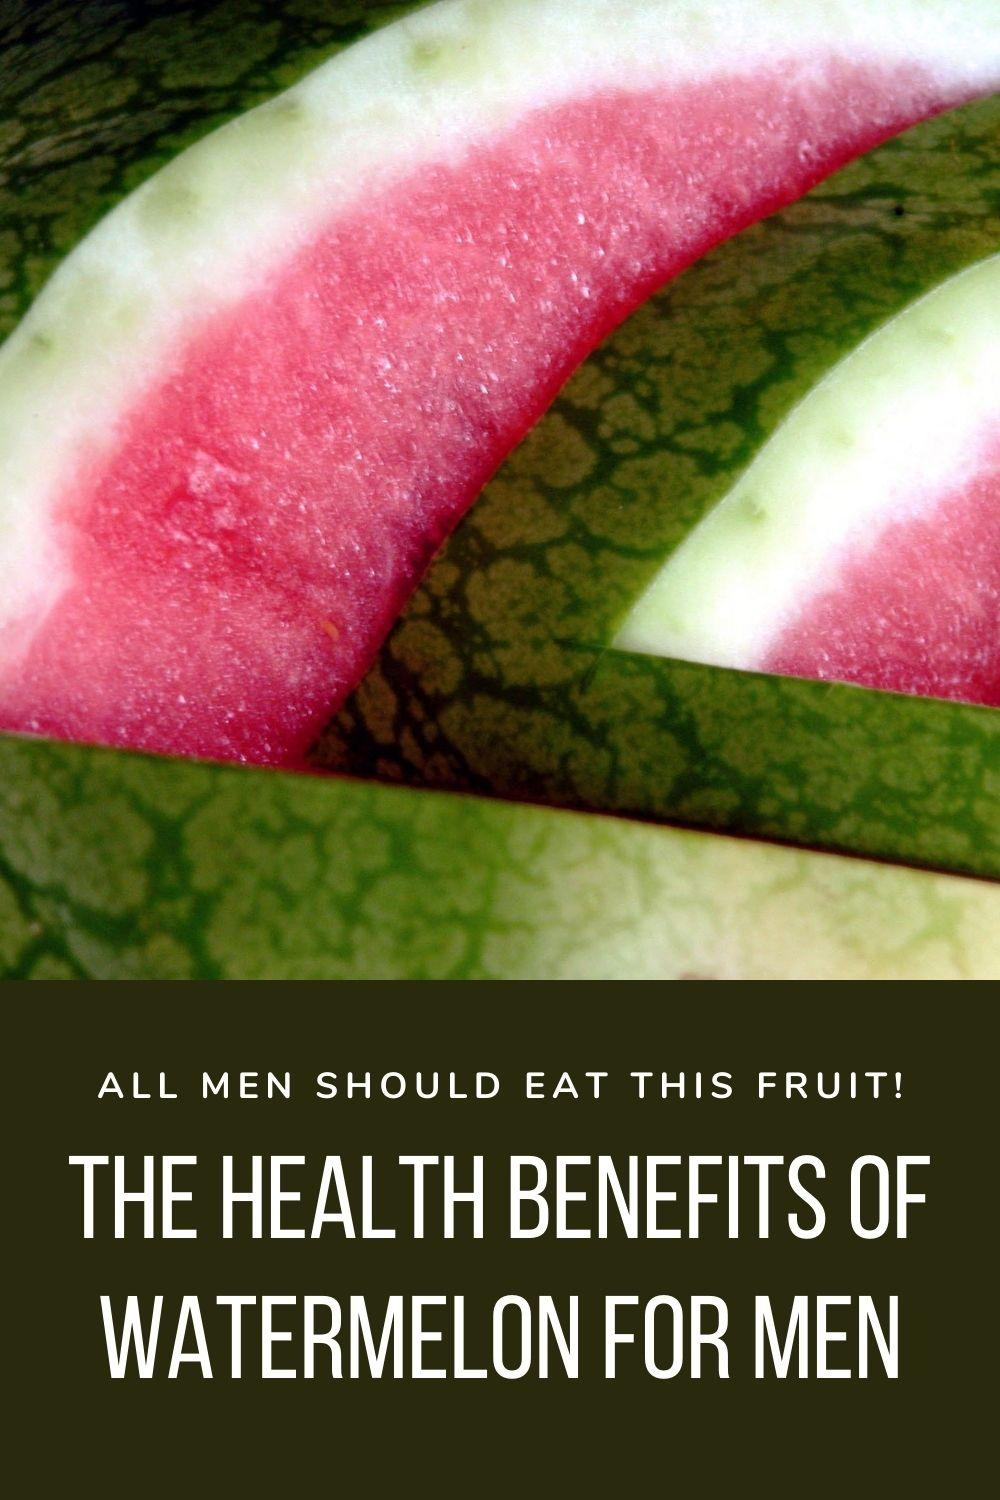 The health benefits of watermelon for men graphic